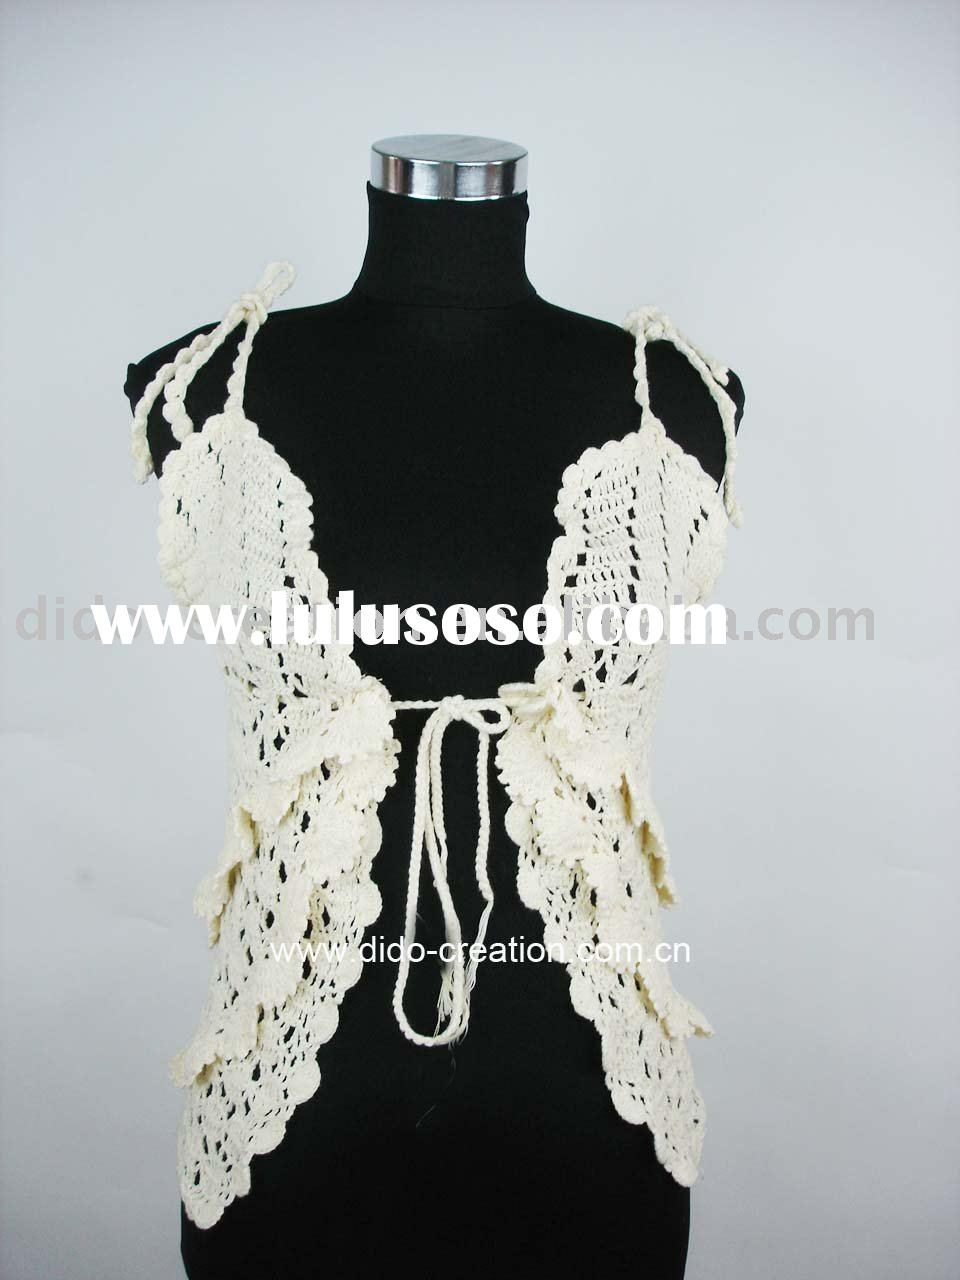 QN12004 Handmade crochet fashion clothes/t-shirt/garment/pullover/lady's vest